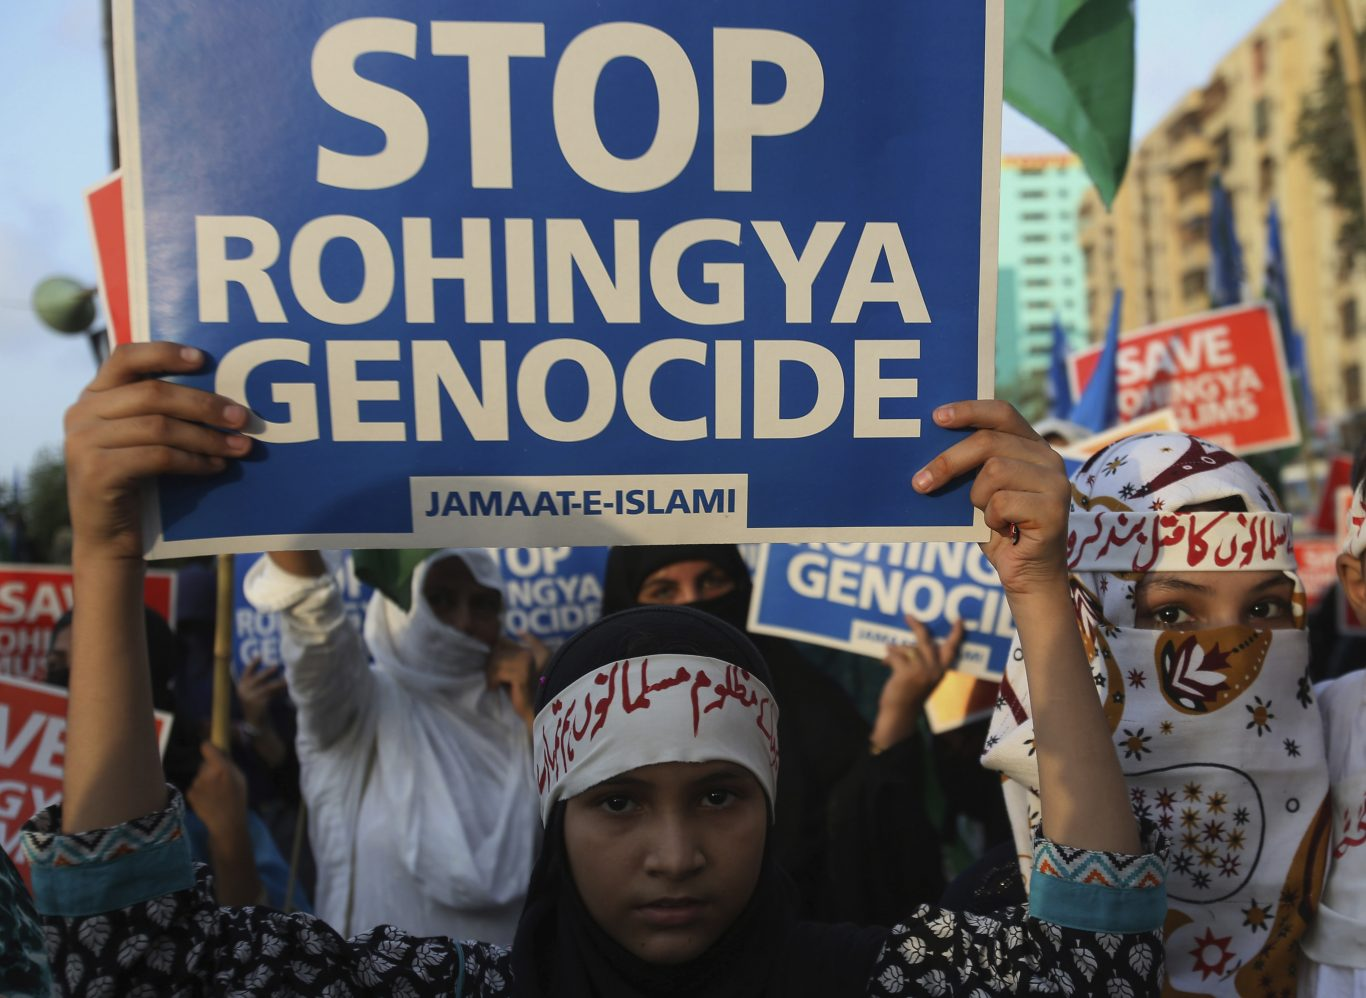 Young supporters of Jamaat-e-Islami, a Pakistani religious group, take part in a rally to condemn ongoing violence against the Rohingya Muslim minority in Myanmar, in Karachi, Pakistan (Fareed Khan/AP)